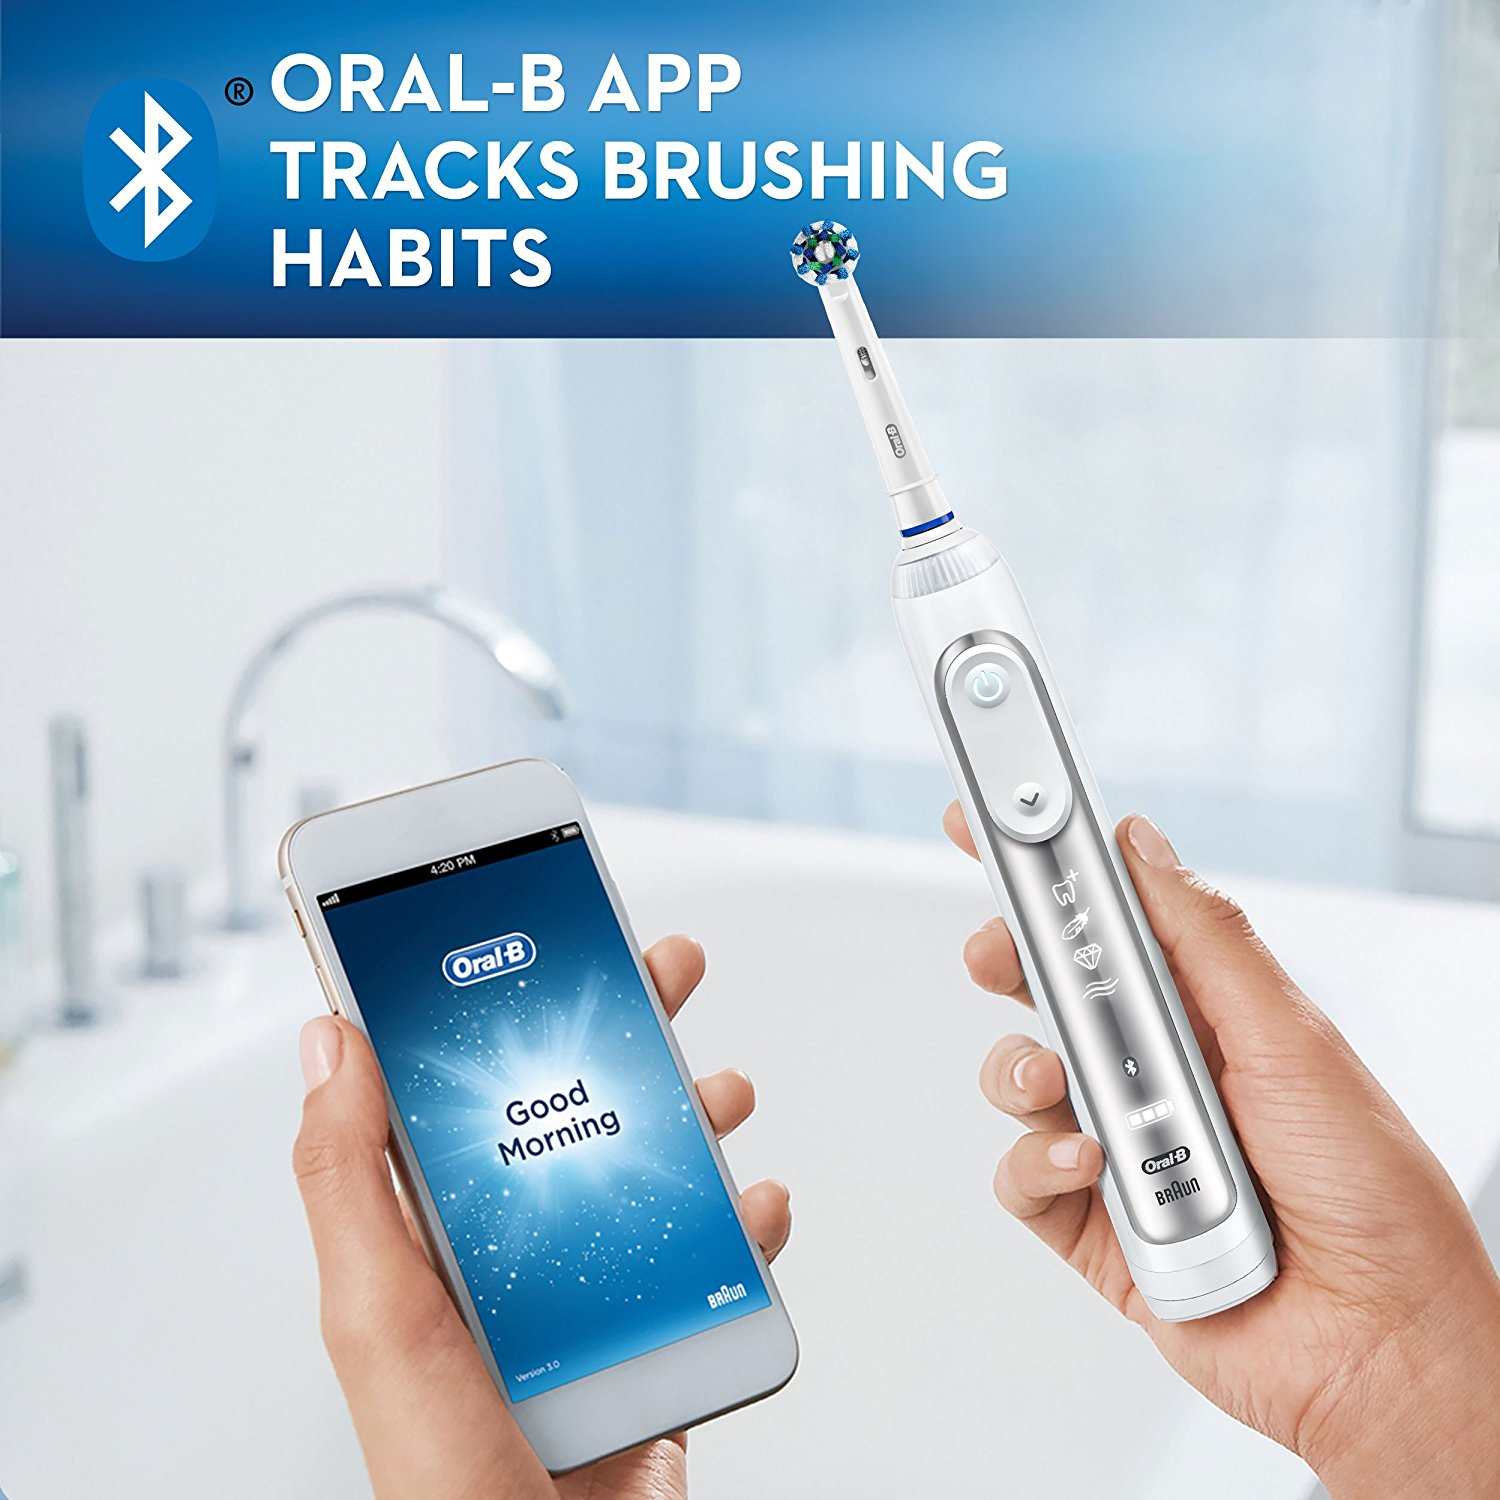 Oral-B App Tracks Brushing Habits